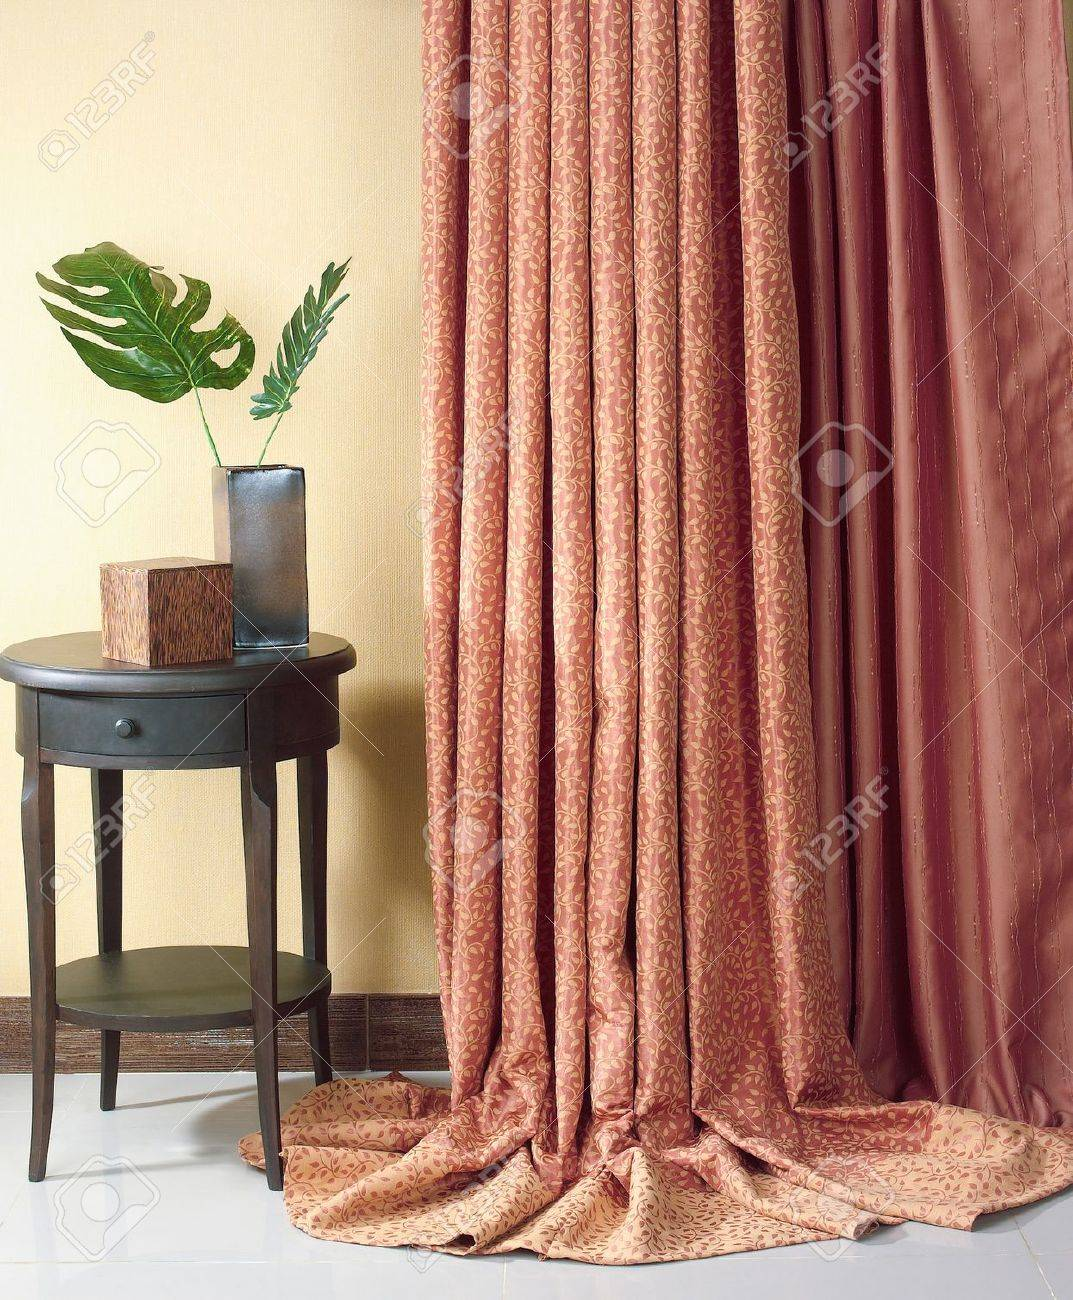 Beautiful curtain for decorate your home Stock Photo - 16658503